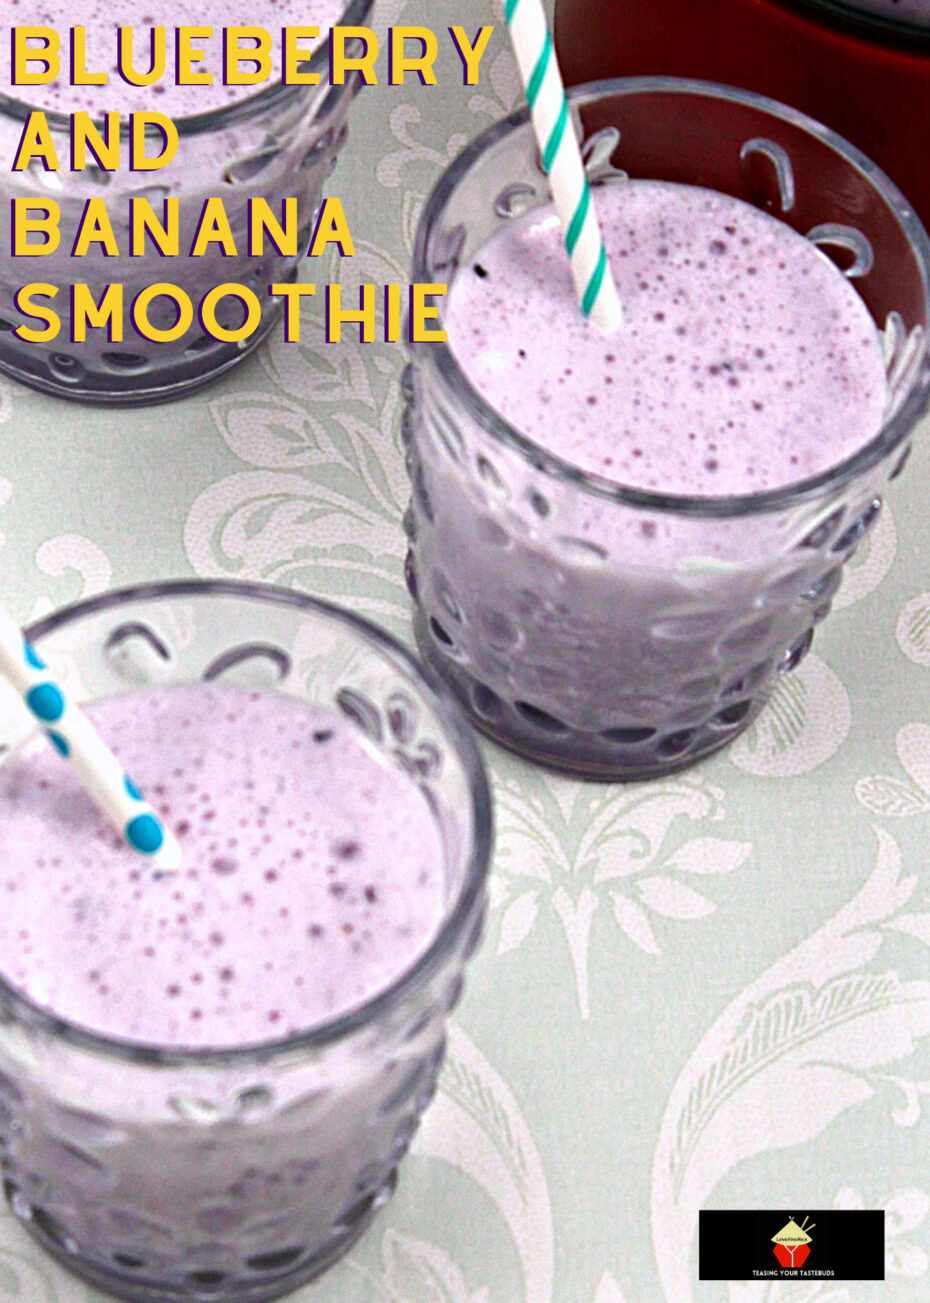 Refreshing Blueberry and Banana Smoothie is a perfect start to your day. Quick & easy recipe using fresh ingredients. Takes minutes to make and seconds to blitz